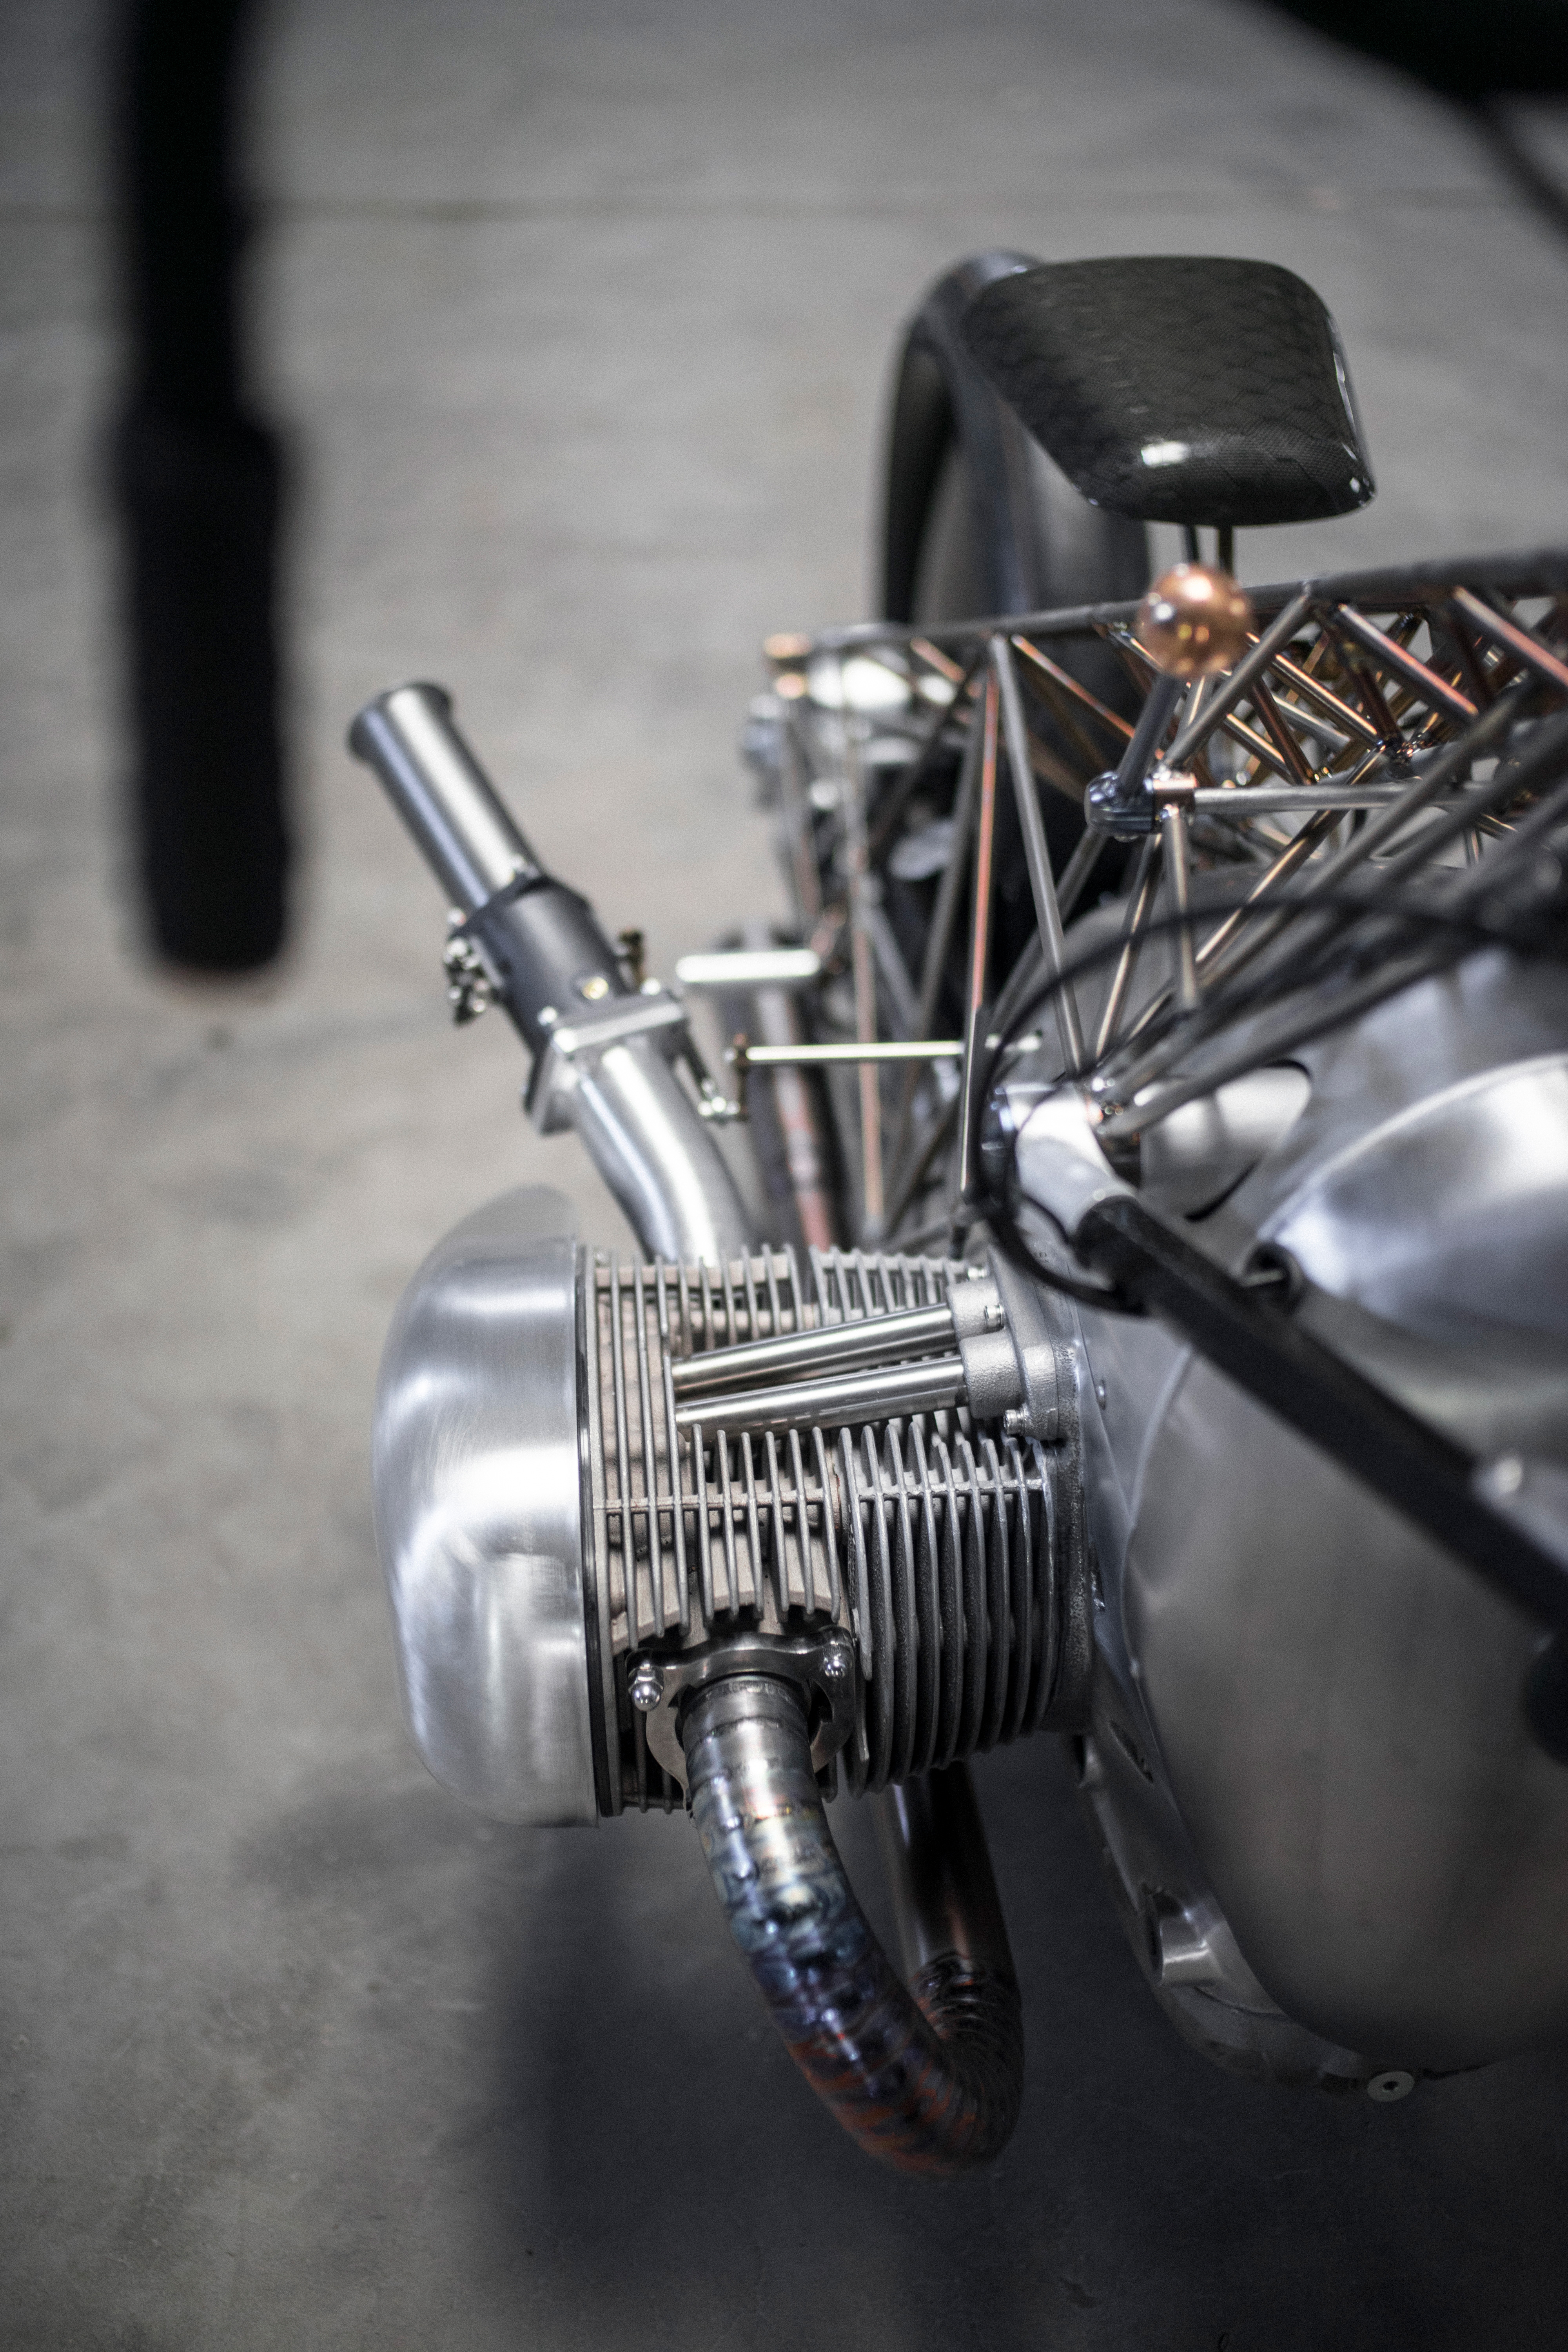 Big Boxer BMW Engine Confirmed for 2020 - Motorcycle com